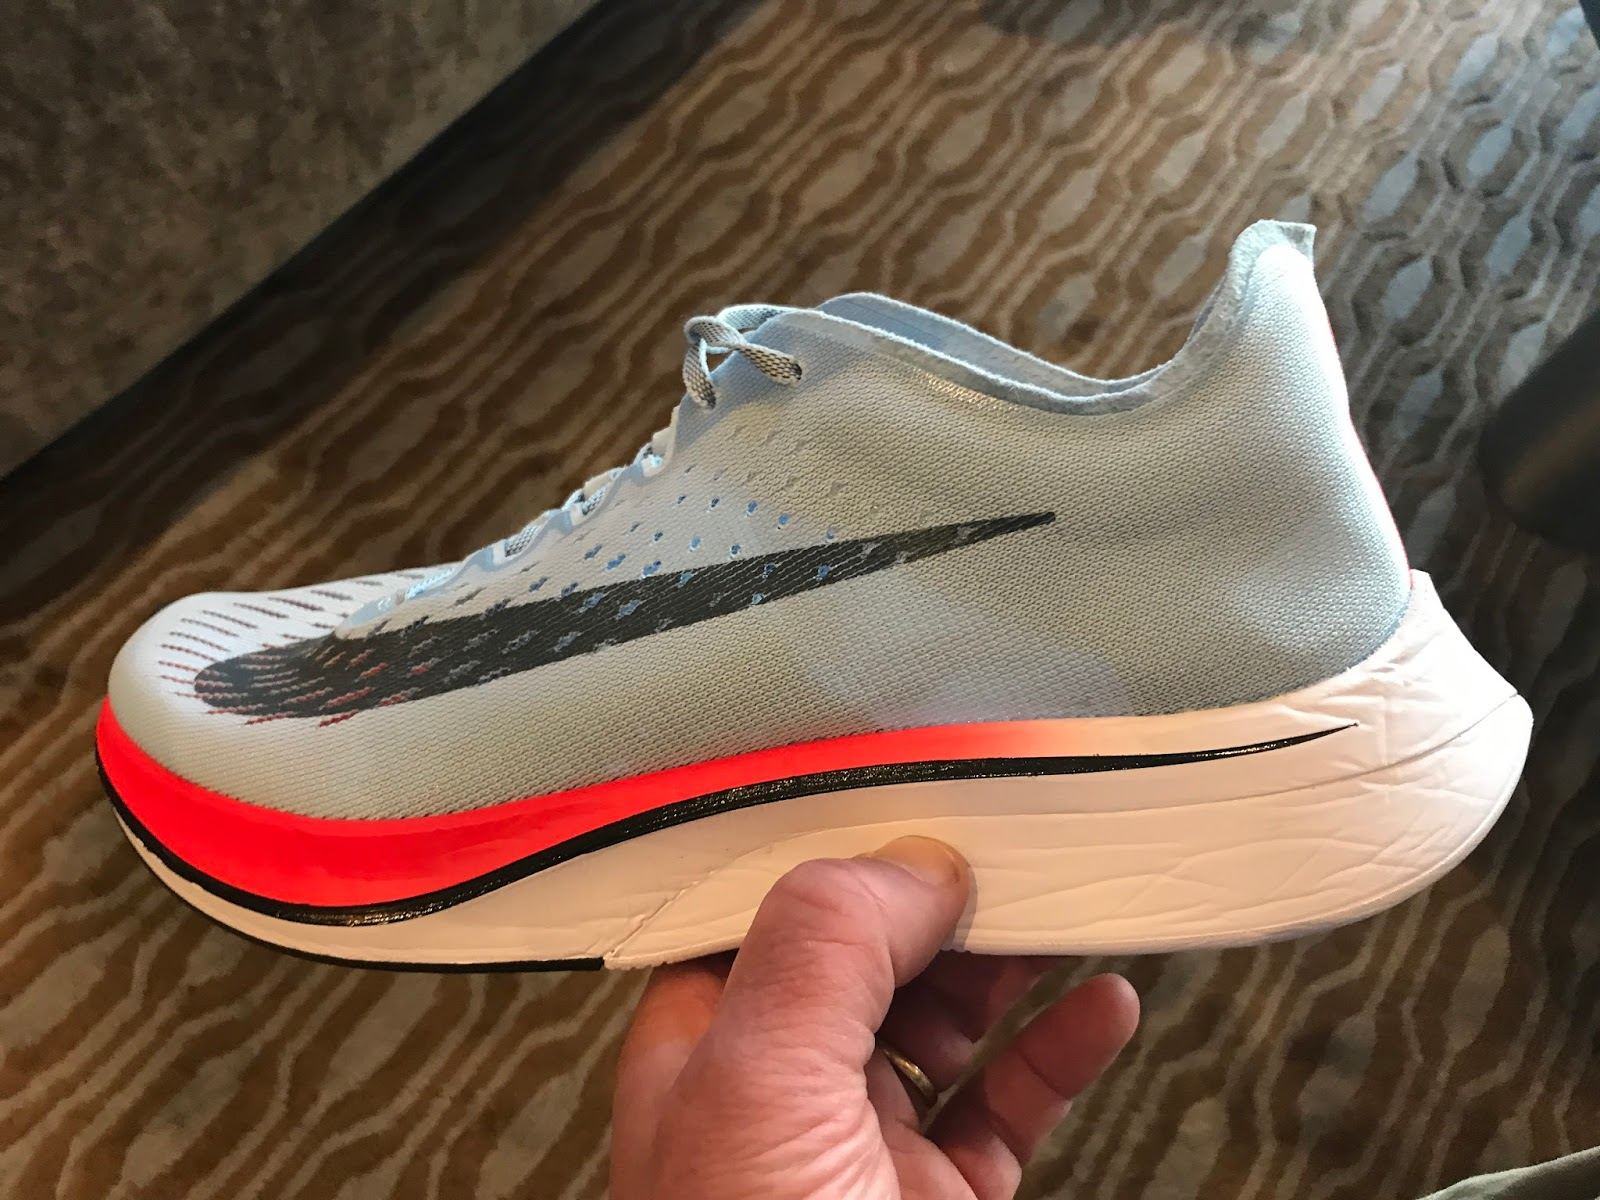 Unlike the tuned down slightly heavier Zoom Fly ($150) there are no Flywire  cords evident.